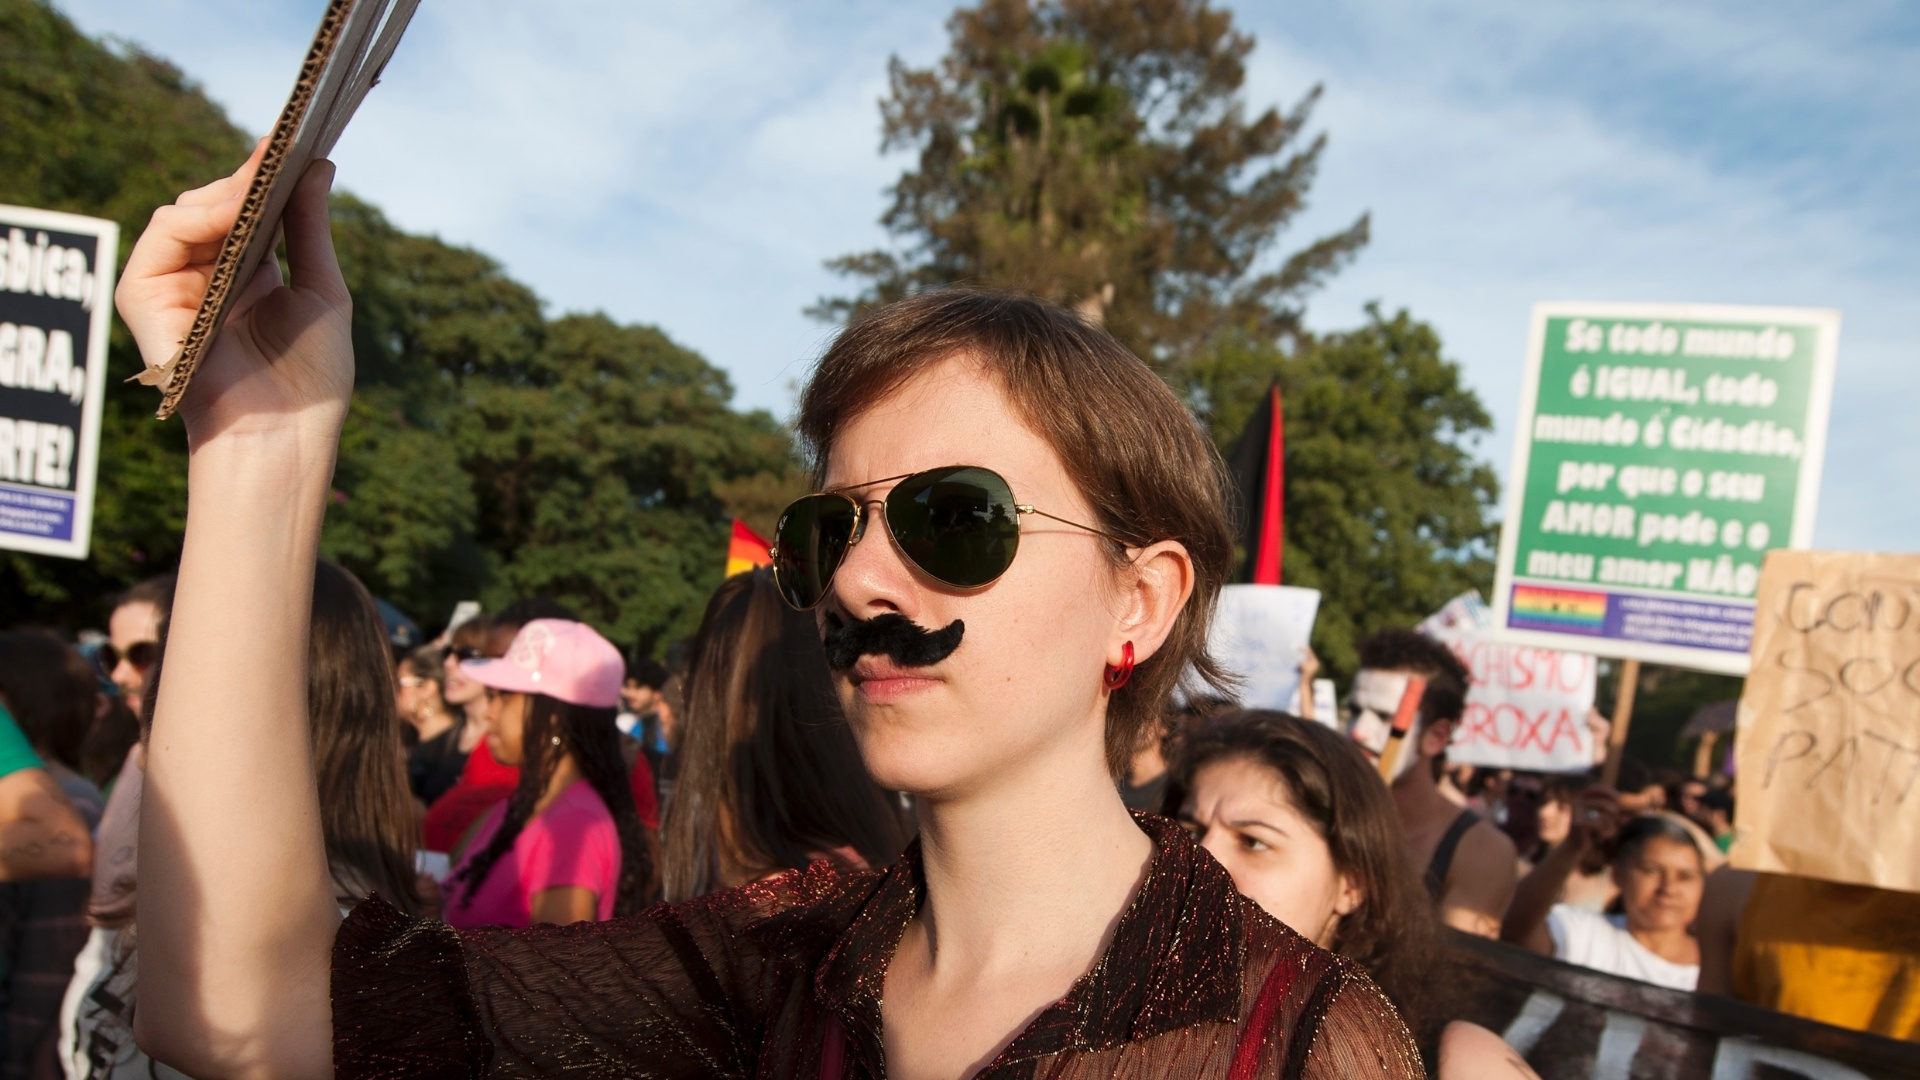 27.05.2012 - De bigode, mulher defende os direitos femininos na Marcha das Vadias em Porto Alegre